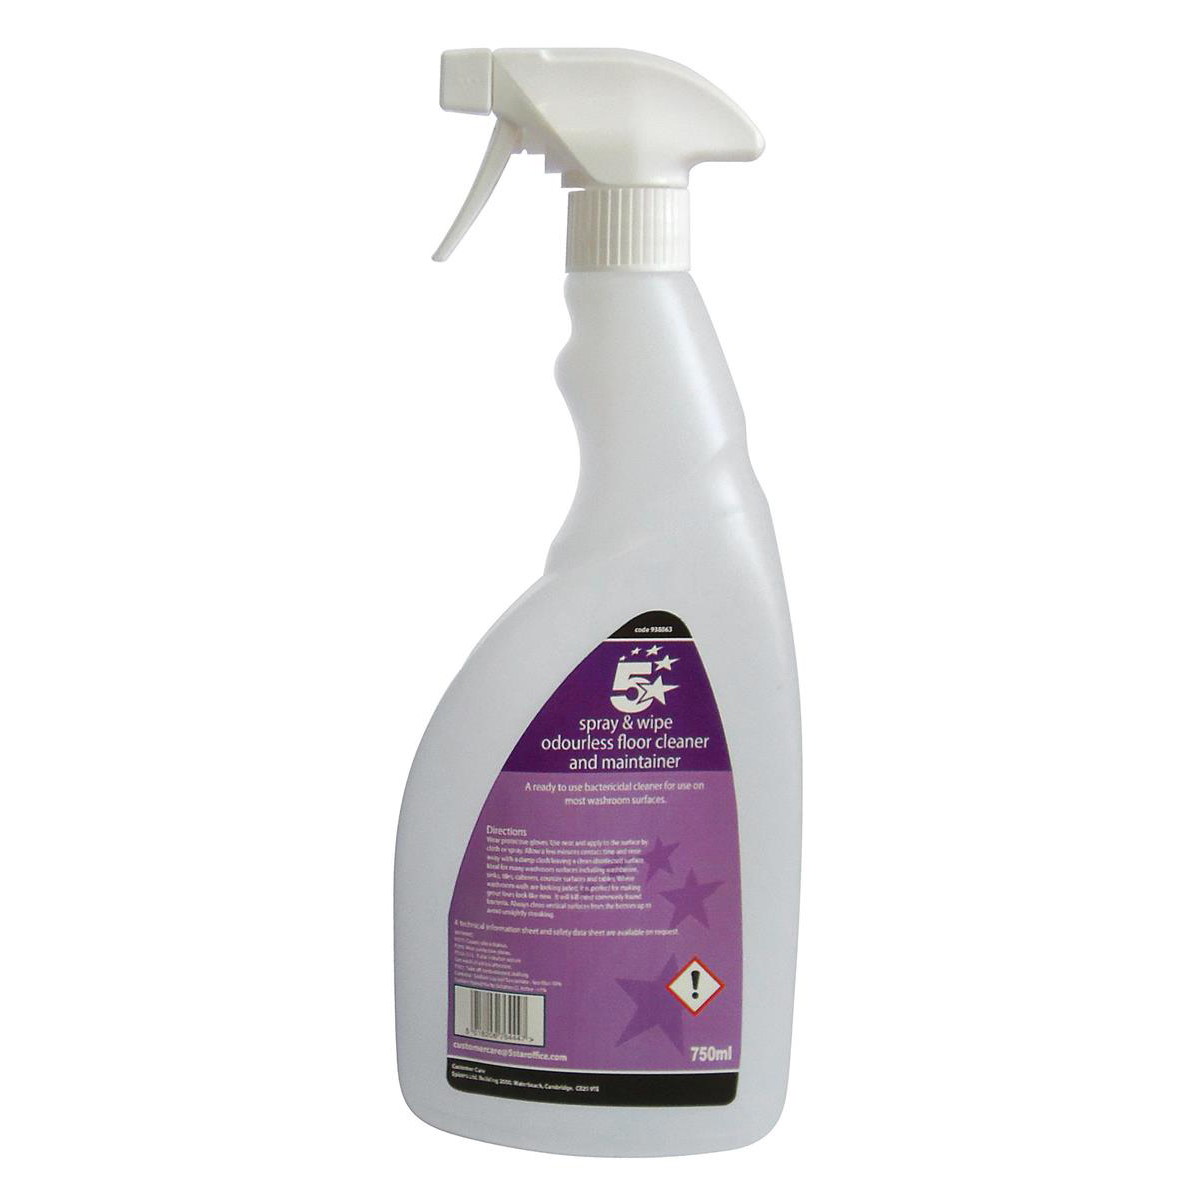 5 Star Facilities Pre-labelled Empty Bottle for Concentrated Odourless Floor Cleaner Capacity = 750ml